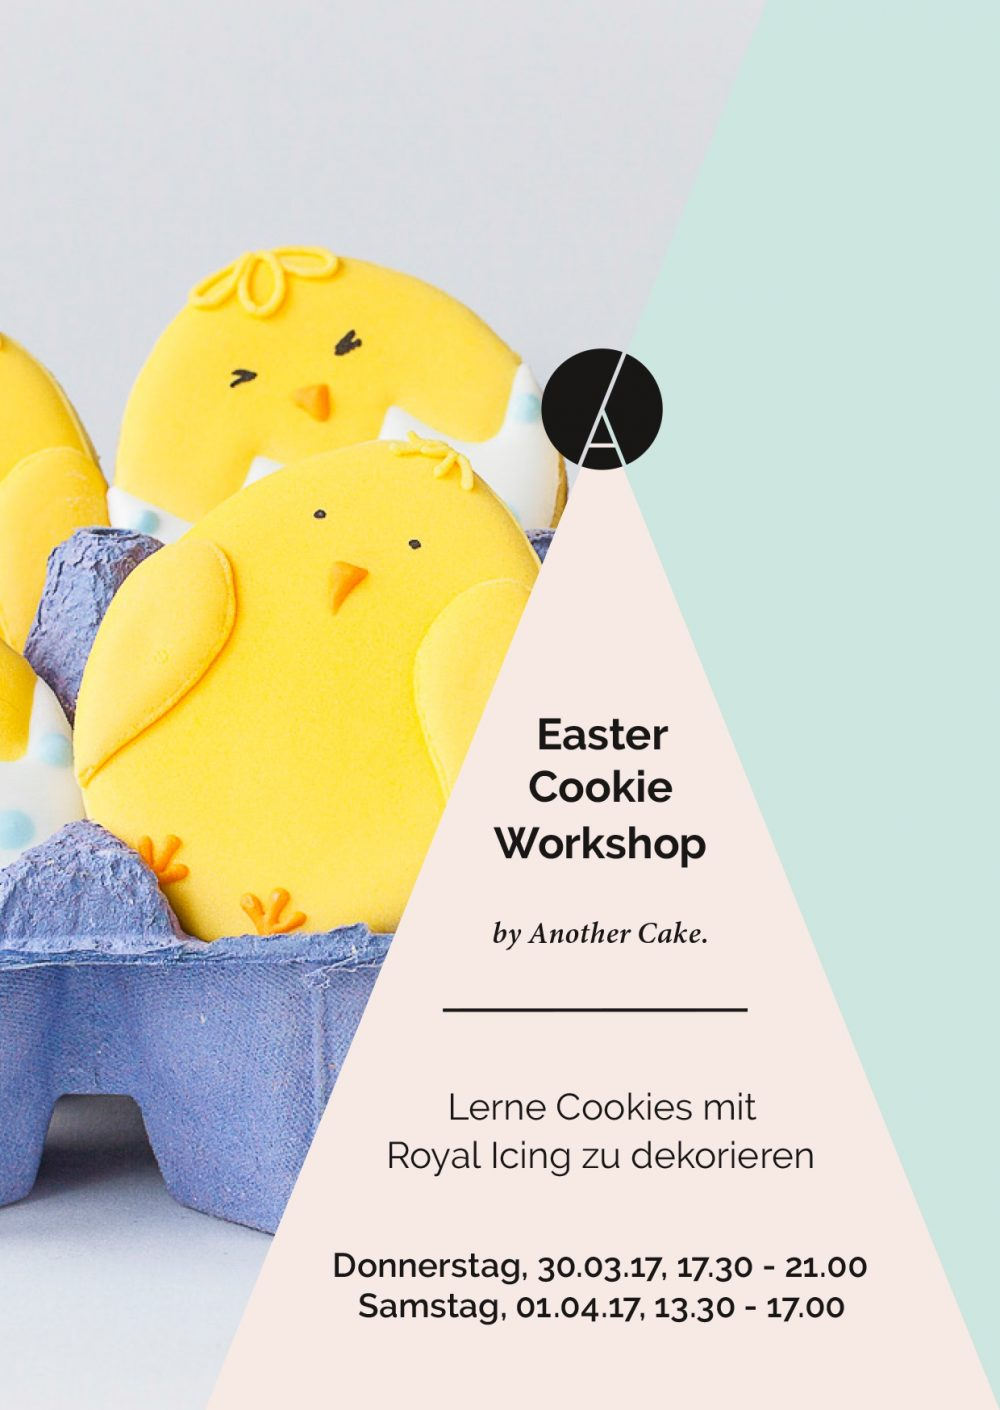 Cookie Workshop Ostern 2017 Seite 1.indd